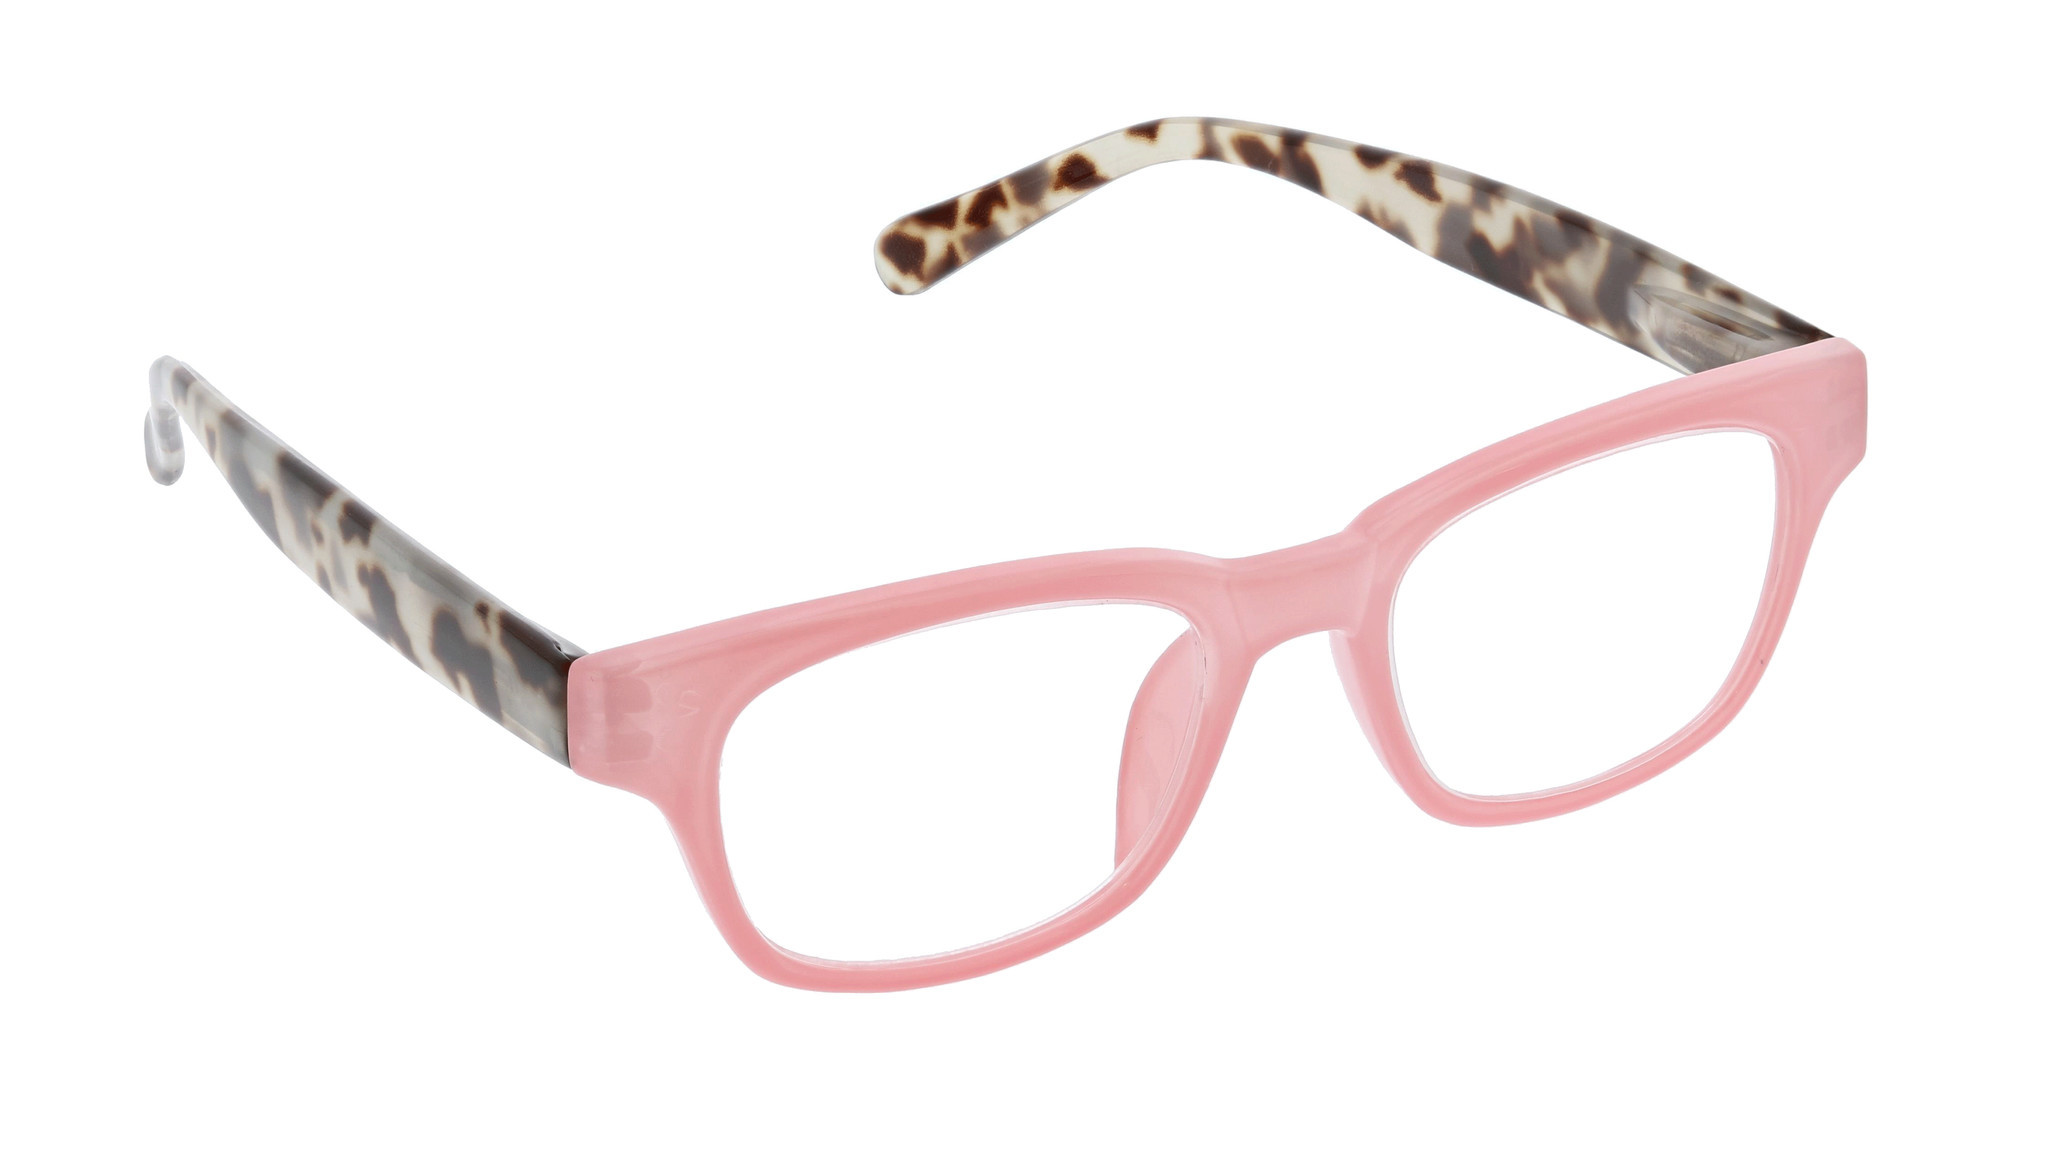 Peepers polycarbonate Vintage Vibes reading glasses with tortoise temples, anti-scratch coated lense